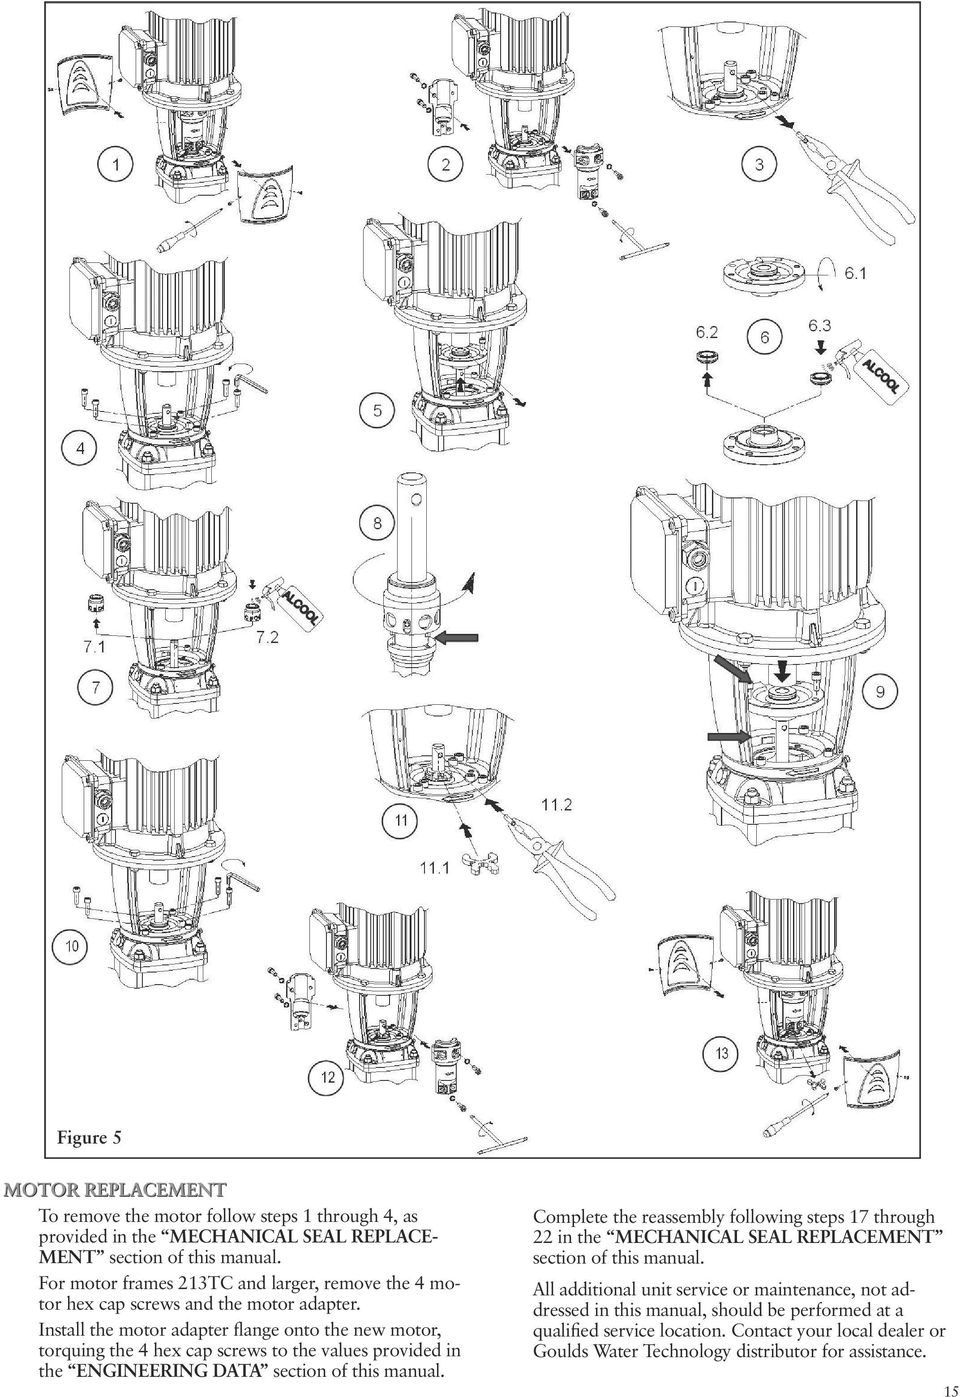 Instruction Manual Im228r03 Model E Sv Installation Operation And Parts Diagram For Gourmet Single Handle Kitchen Faucet 150 450 Install The Motor Adapter Flange Onto New Torquing 4 Hex Cap Screws